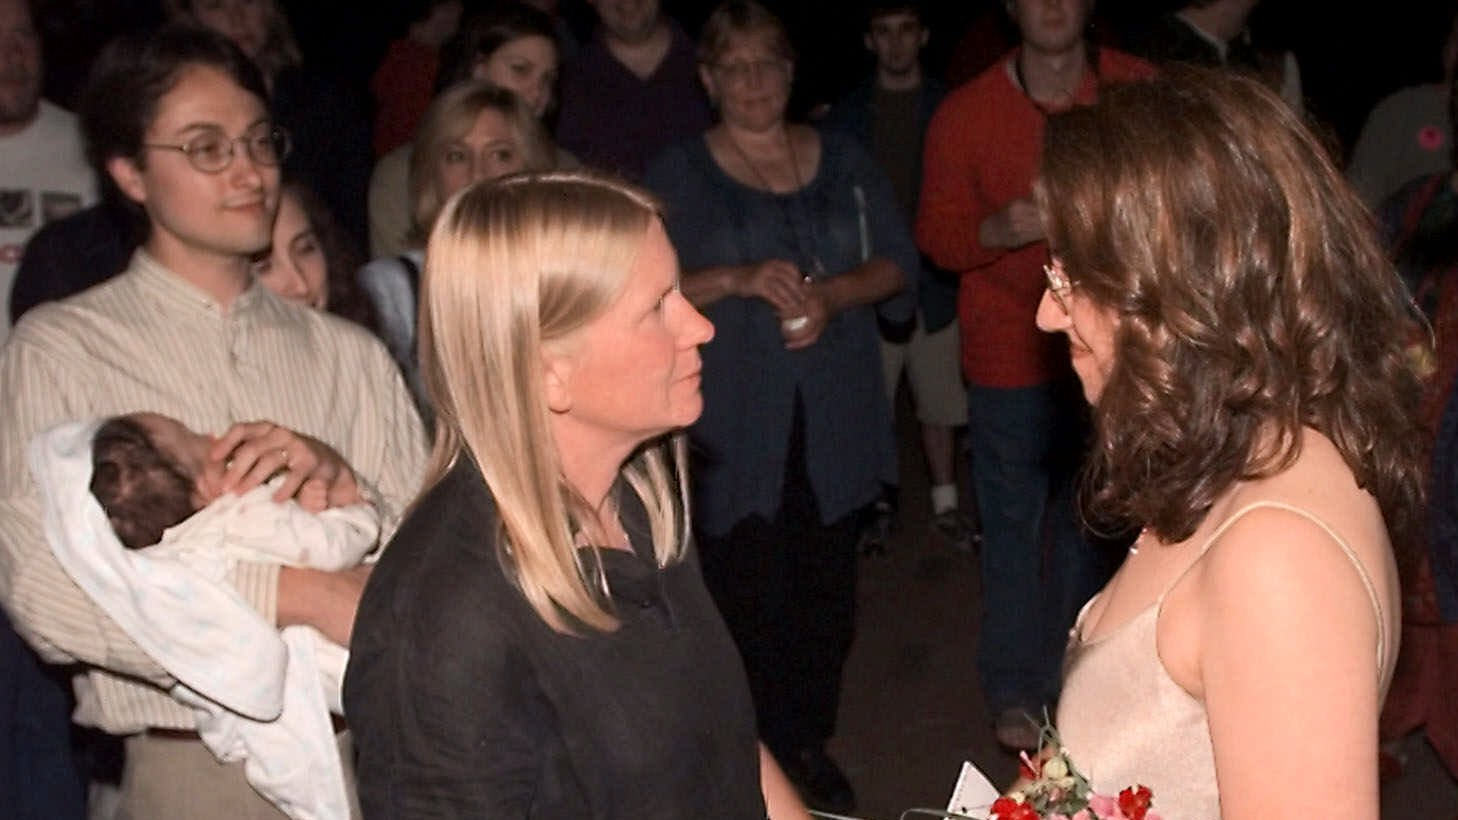 Carolyn Conrad (right) and Kathleen Peterson exchange vows during their civil union ceremony in Brattlleboro, Vt., shortly after midnight on July 1, 2000.